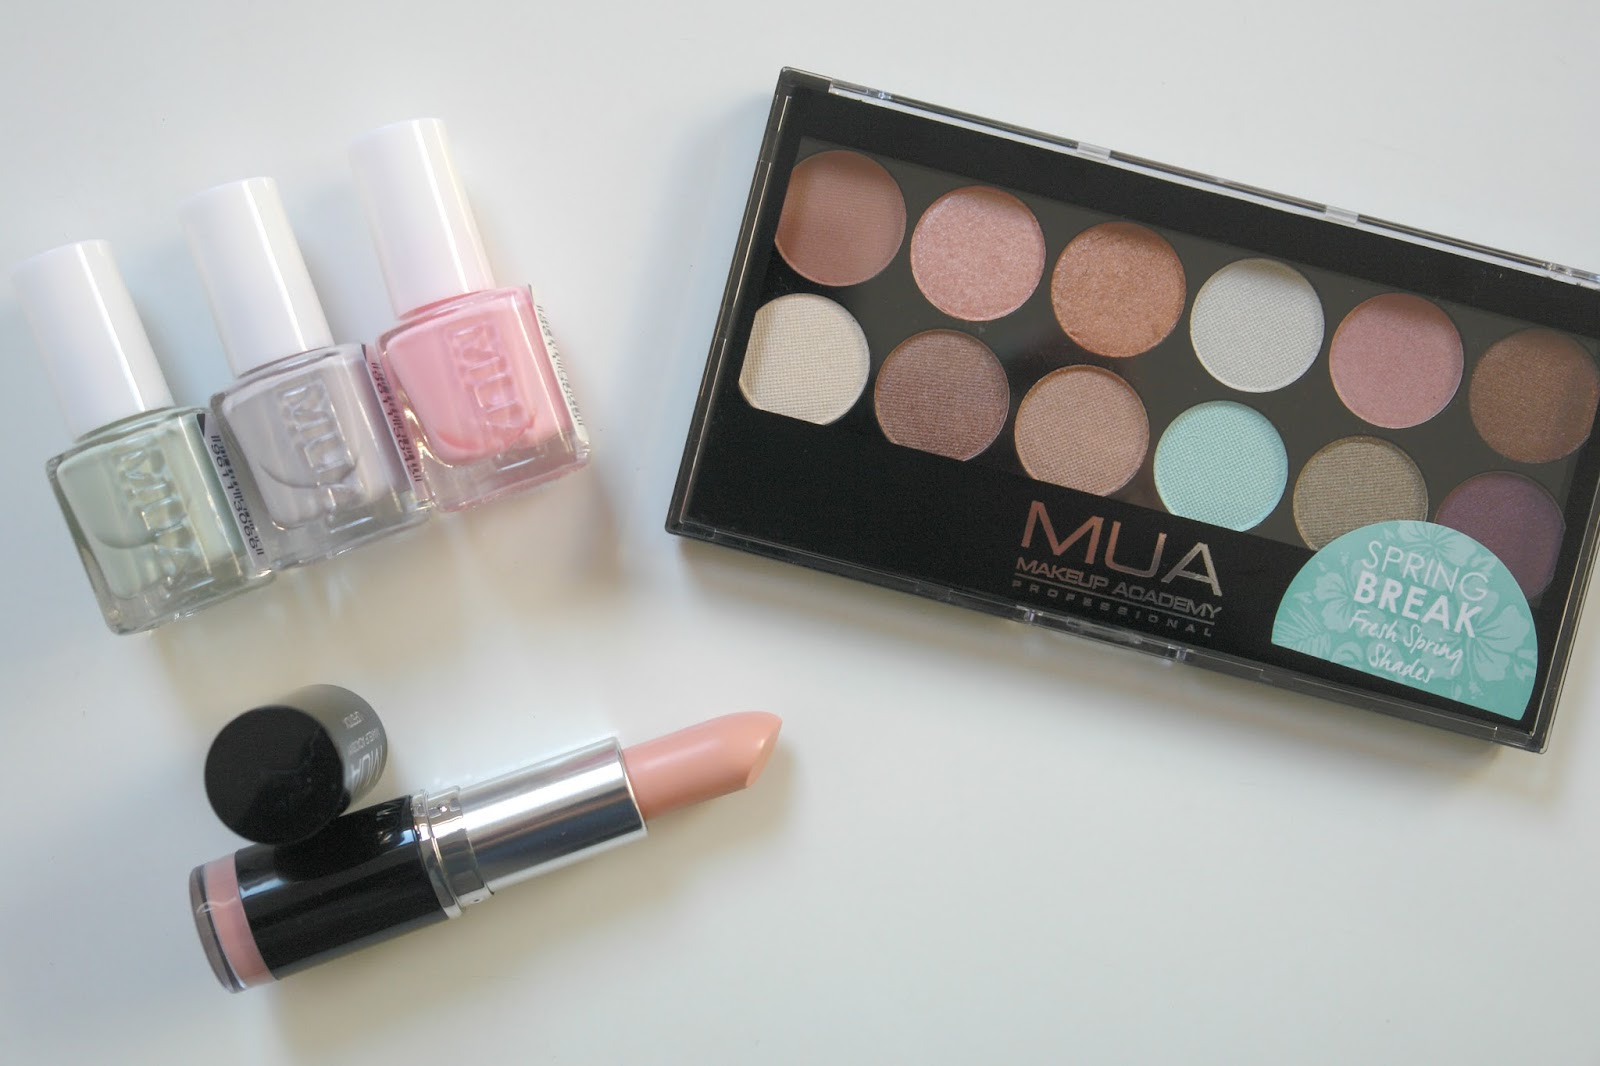 MUA Spring 2015 collection, Spring Break palette,MUA, spring, 2015, eye shadows, palette, make up, beauty, review, nail polish, lipstick, Spearmint, Posy, Lavender, Barely There, lipstick